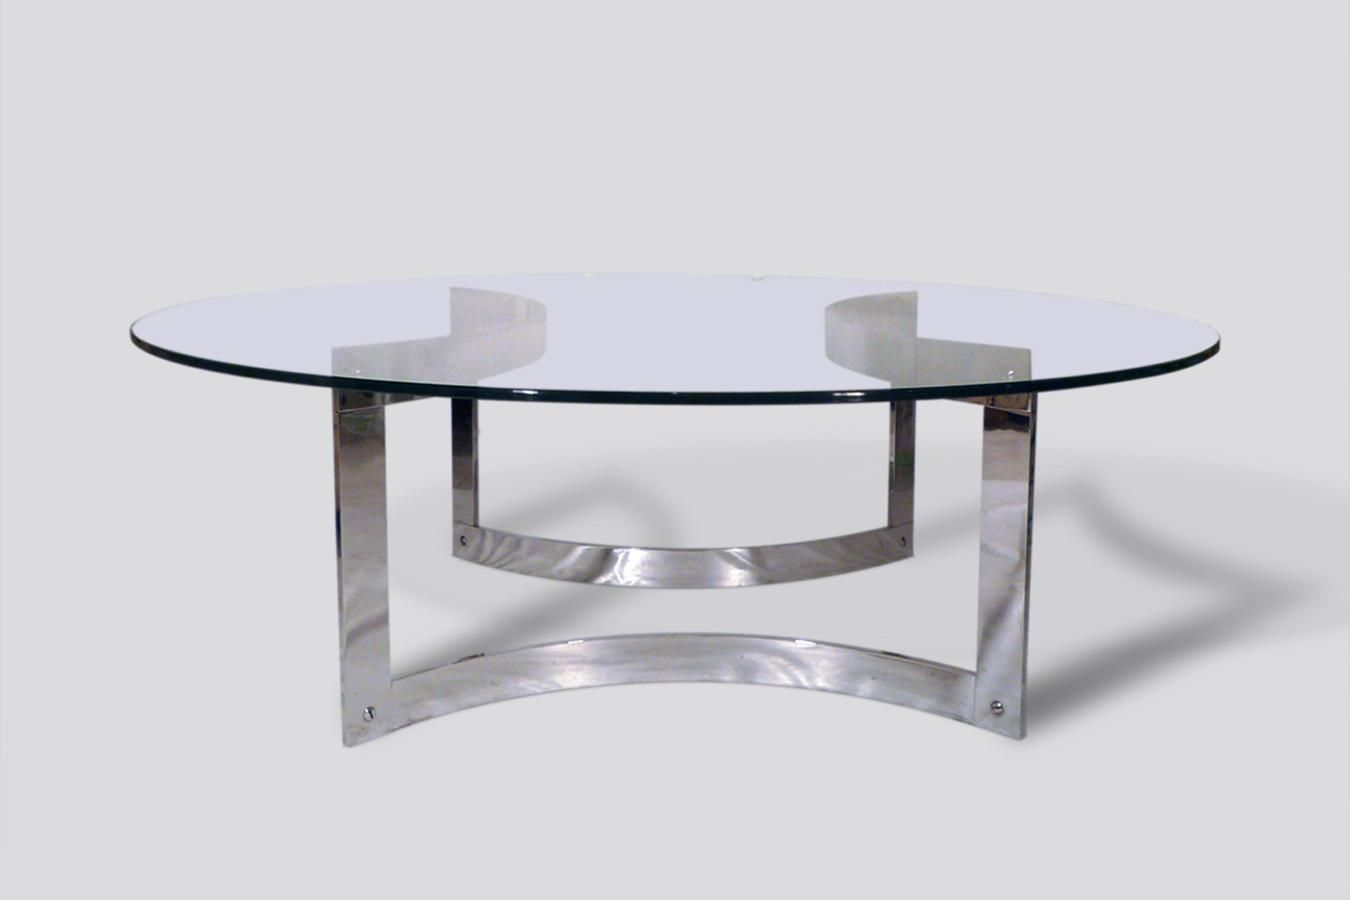 D 1 2m H38cm Round Chrome And Glass Coffee Table 1970s 1 Glass Coffee Table Coffee Table Glass Top Coffee Table [ 900 x 1350 Pixel ]